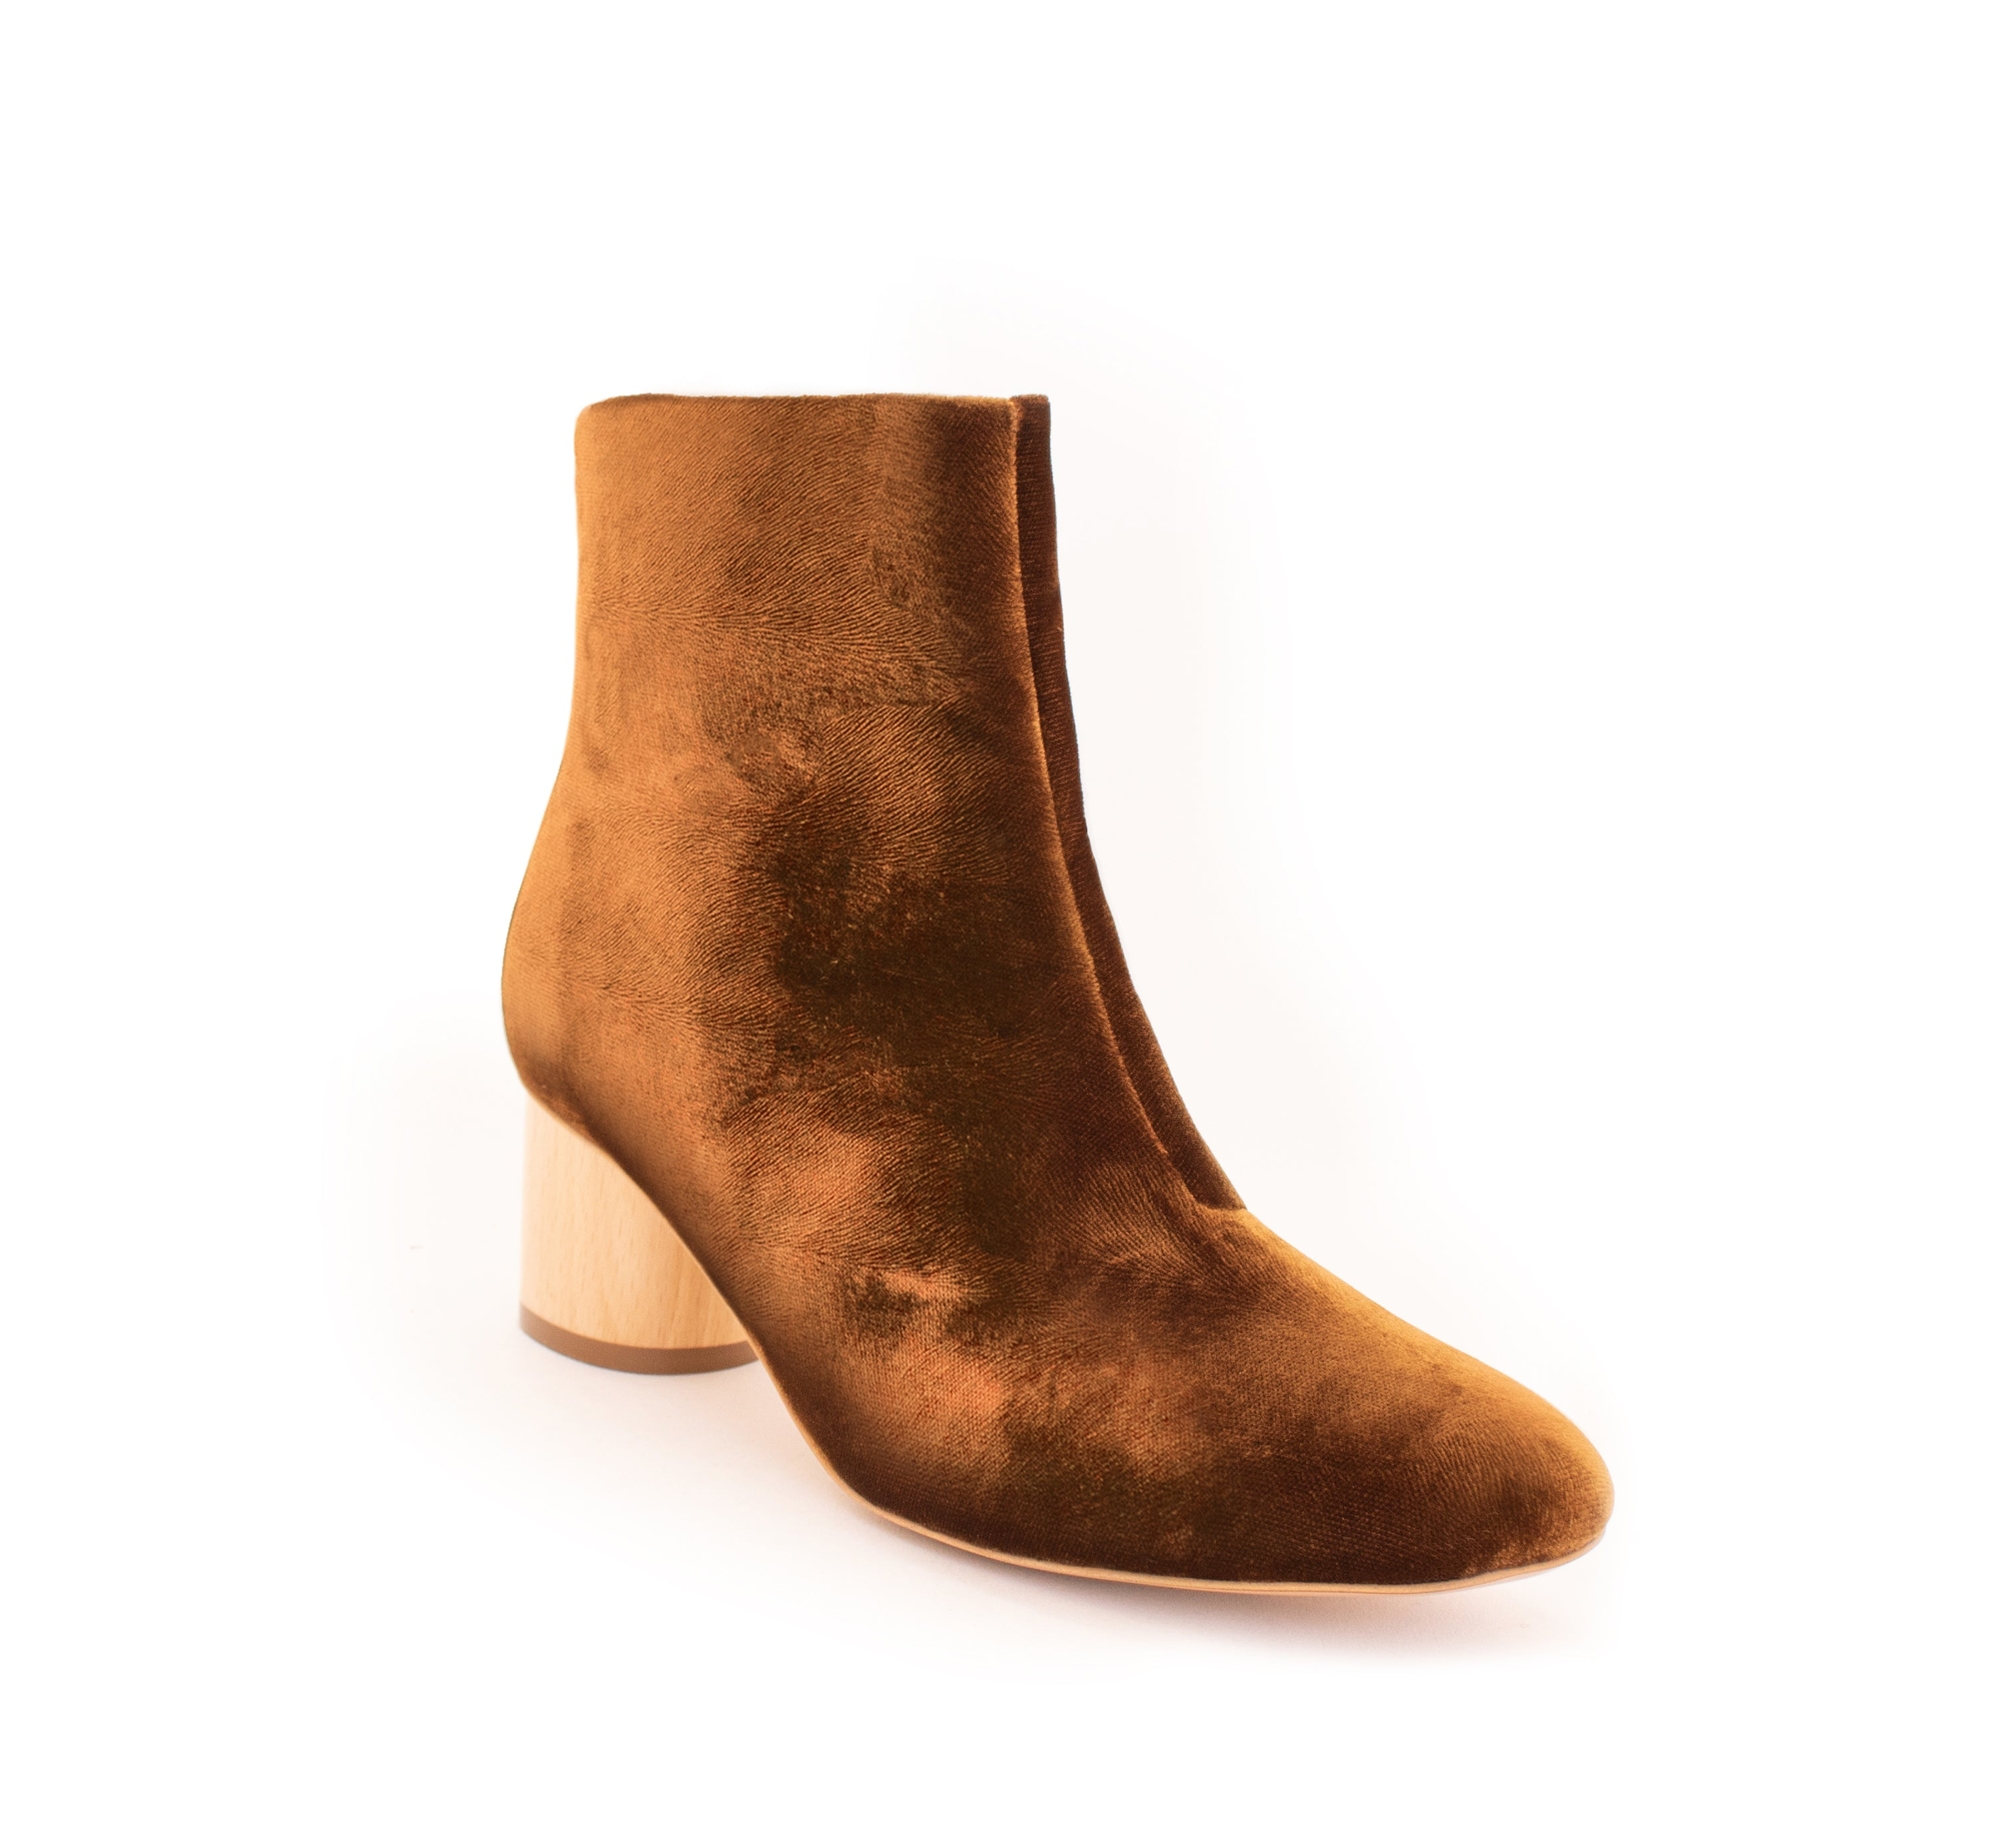 Low Ankle Boot Amber Velvet. Vegan Luxe Ethical Footwear by Sydney Brown. Natural Sustainable Wood Heels. Sustainable & Ethical. Cruelty-Free. Autumn Winter style.